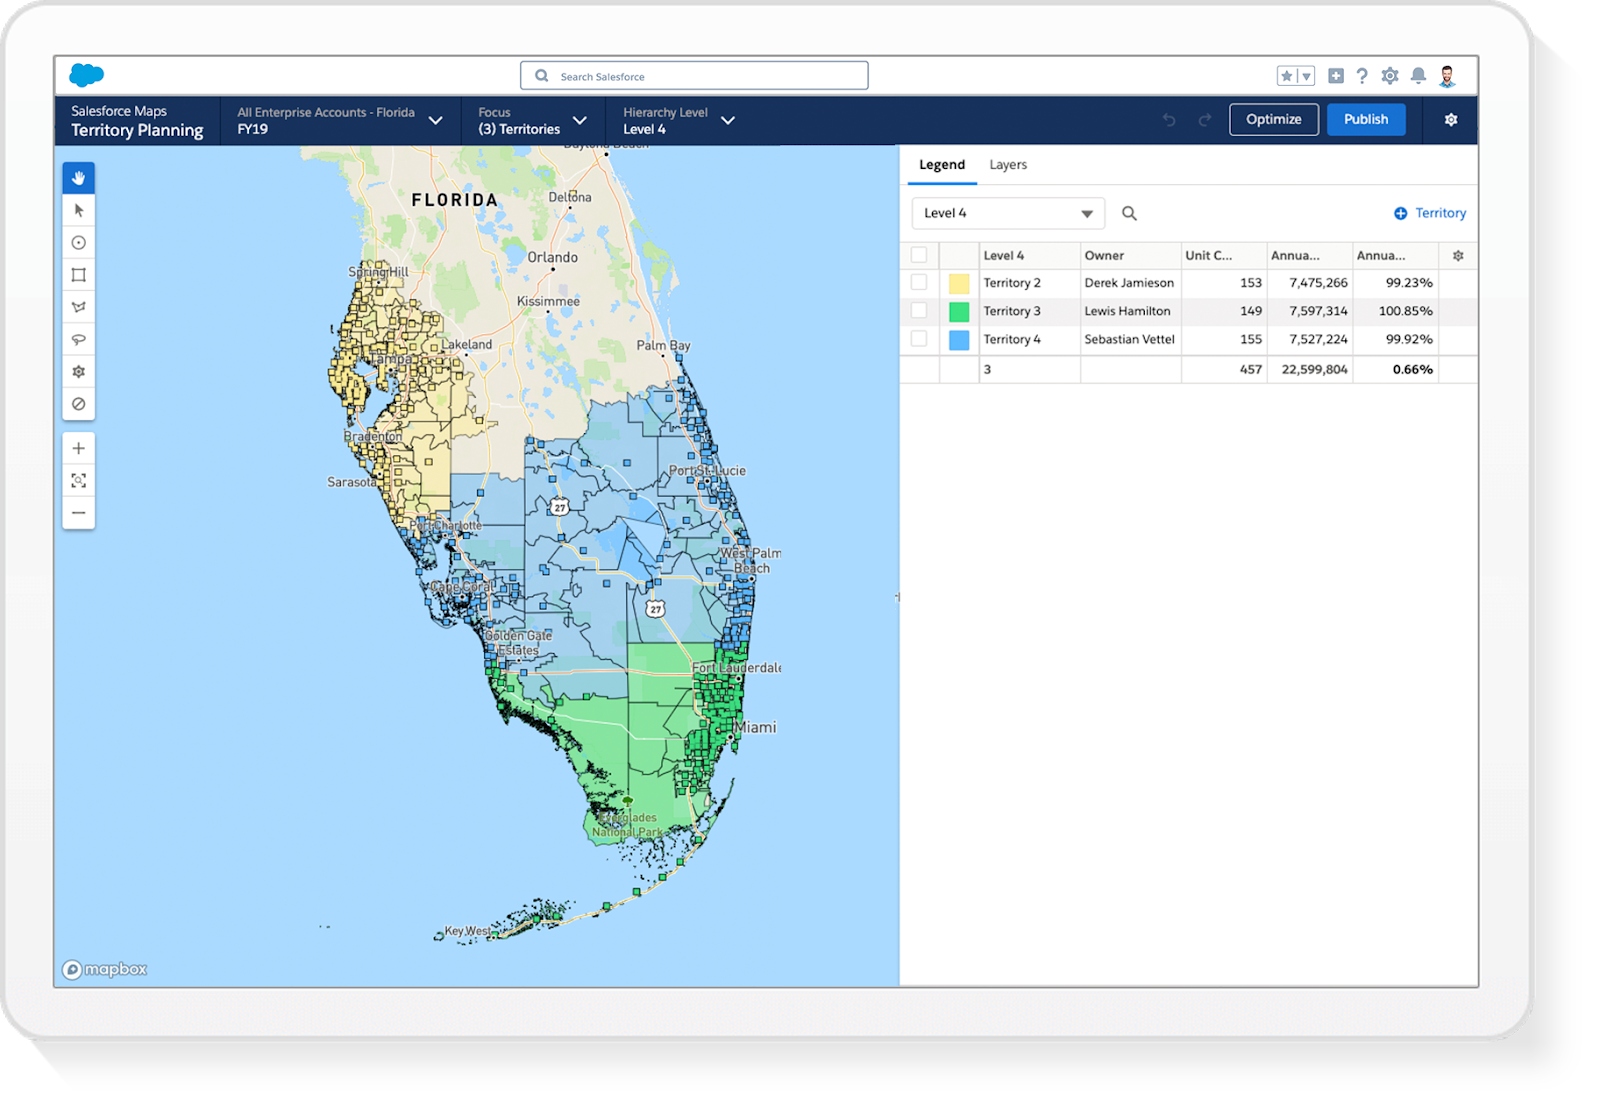 Screenshot showing a map of Florida. Sections of the map are shaded different colors, green, blue, and yellow to illustrate different territories. A legend on the right displays a table of each territory, the territory owner and other columns such as annual review for each territory.